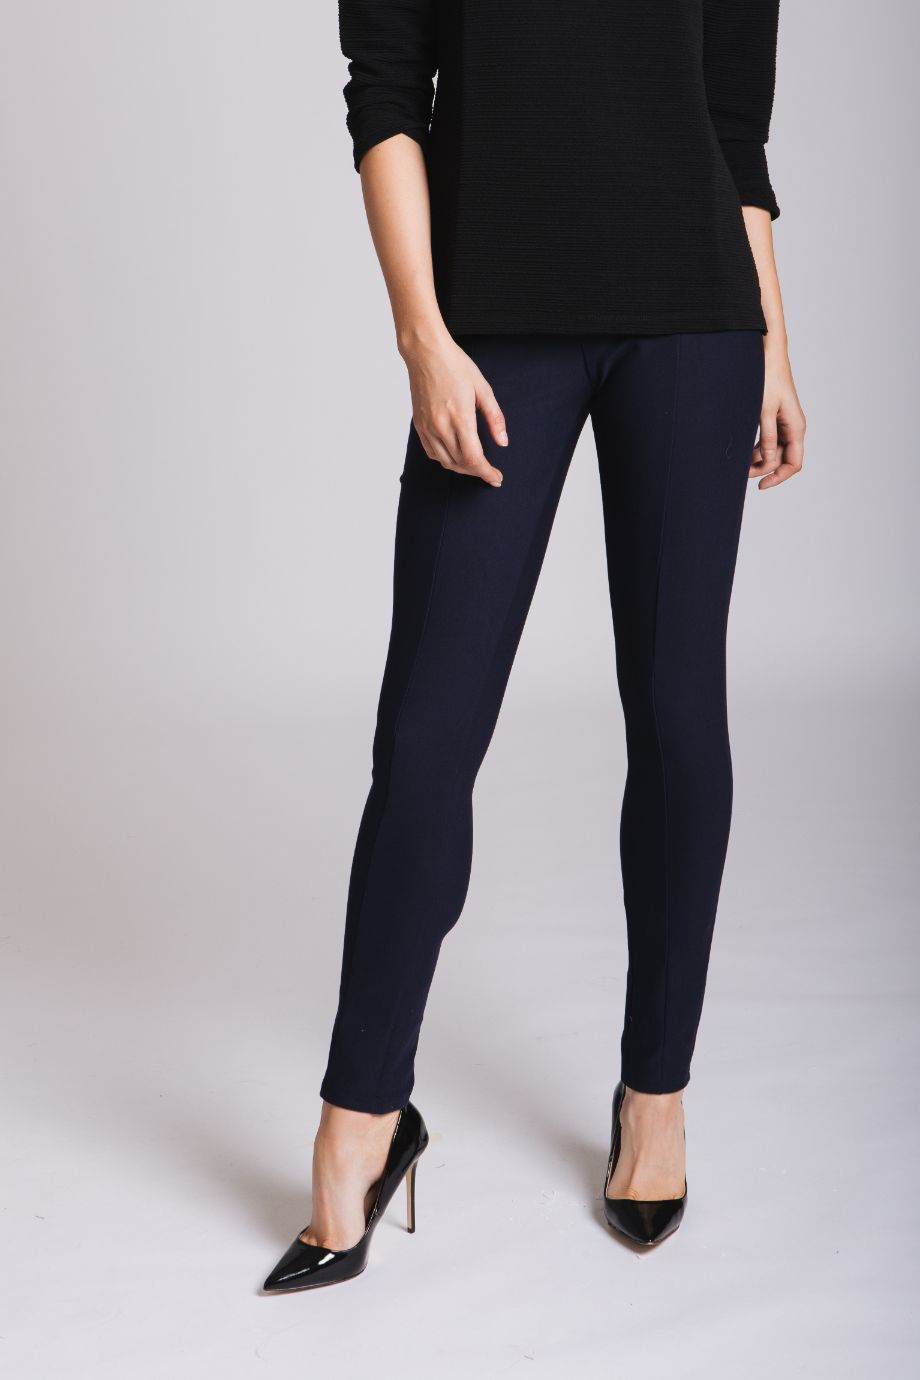 Stretch Trousers: Navy